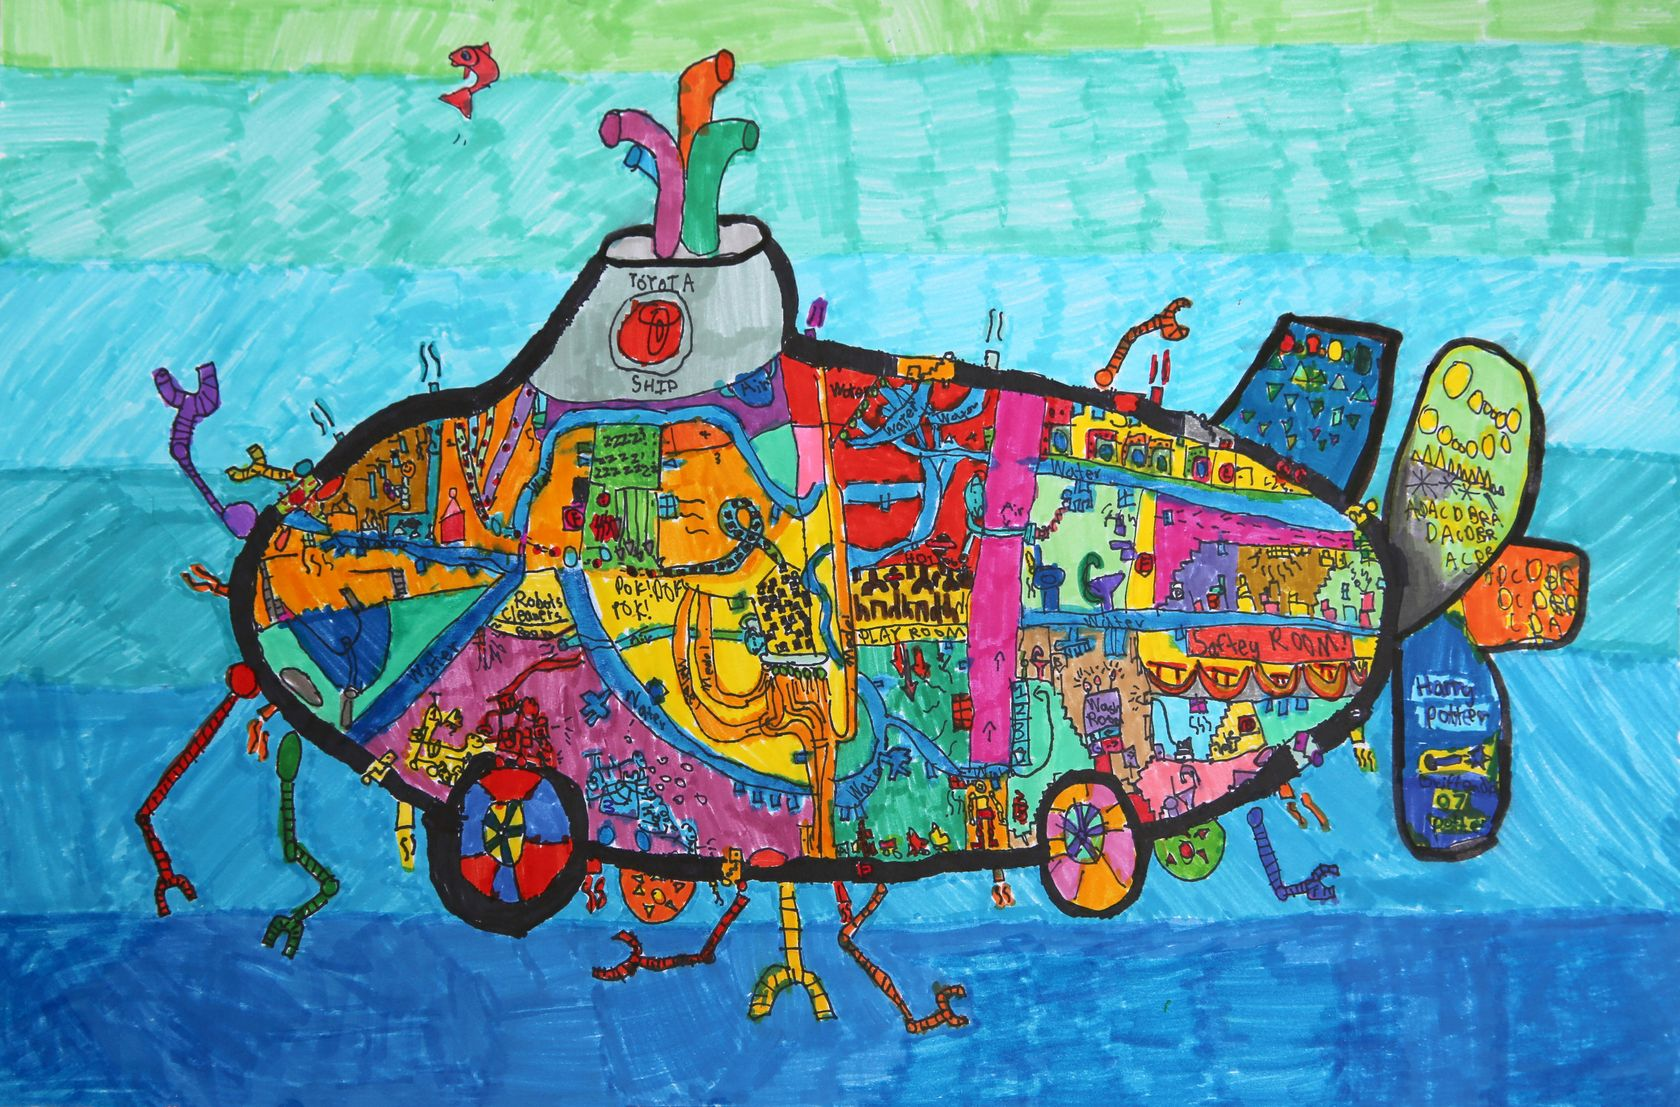 Recycling Submarine Car - Jacob Gaochen